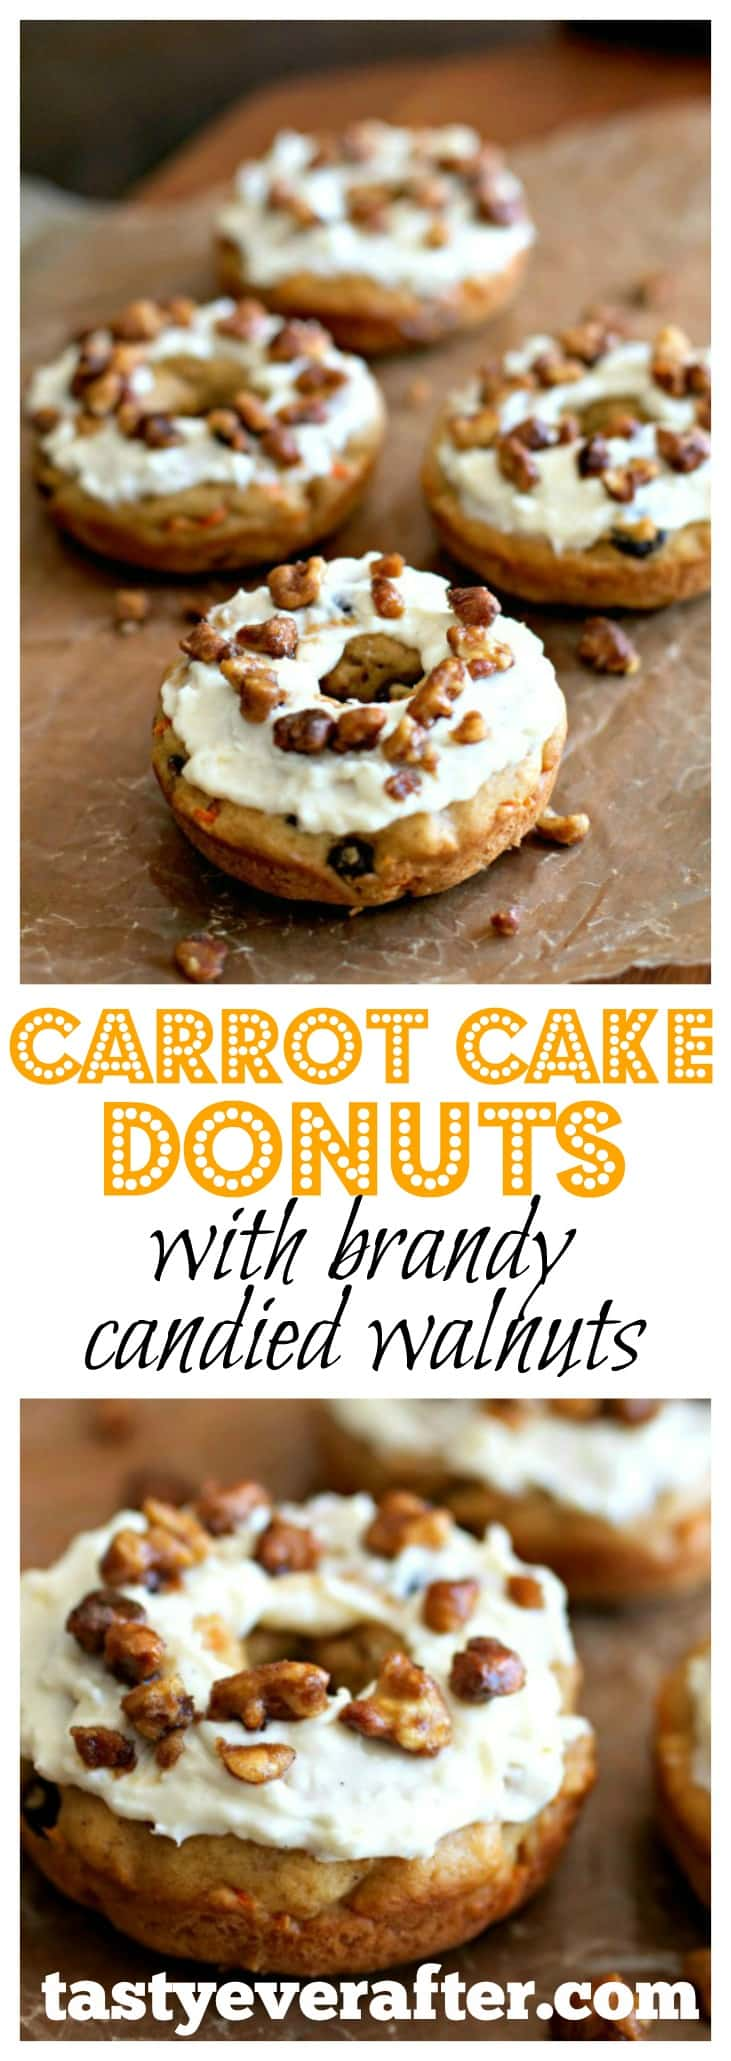 Carrot Cake Donuts With Brandy Candied Walnuts